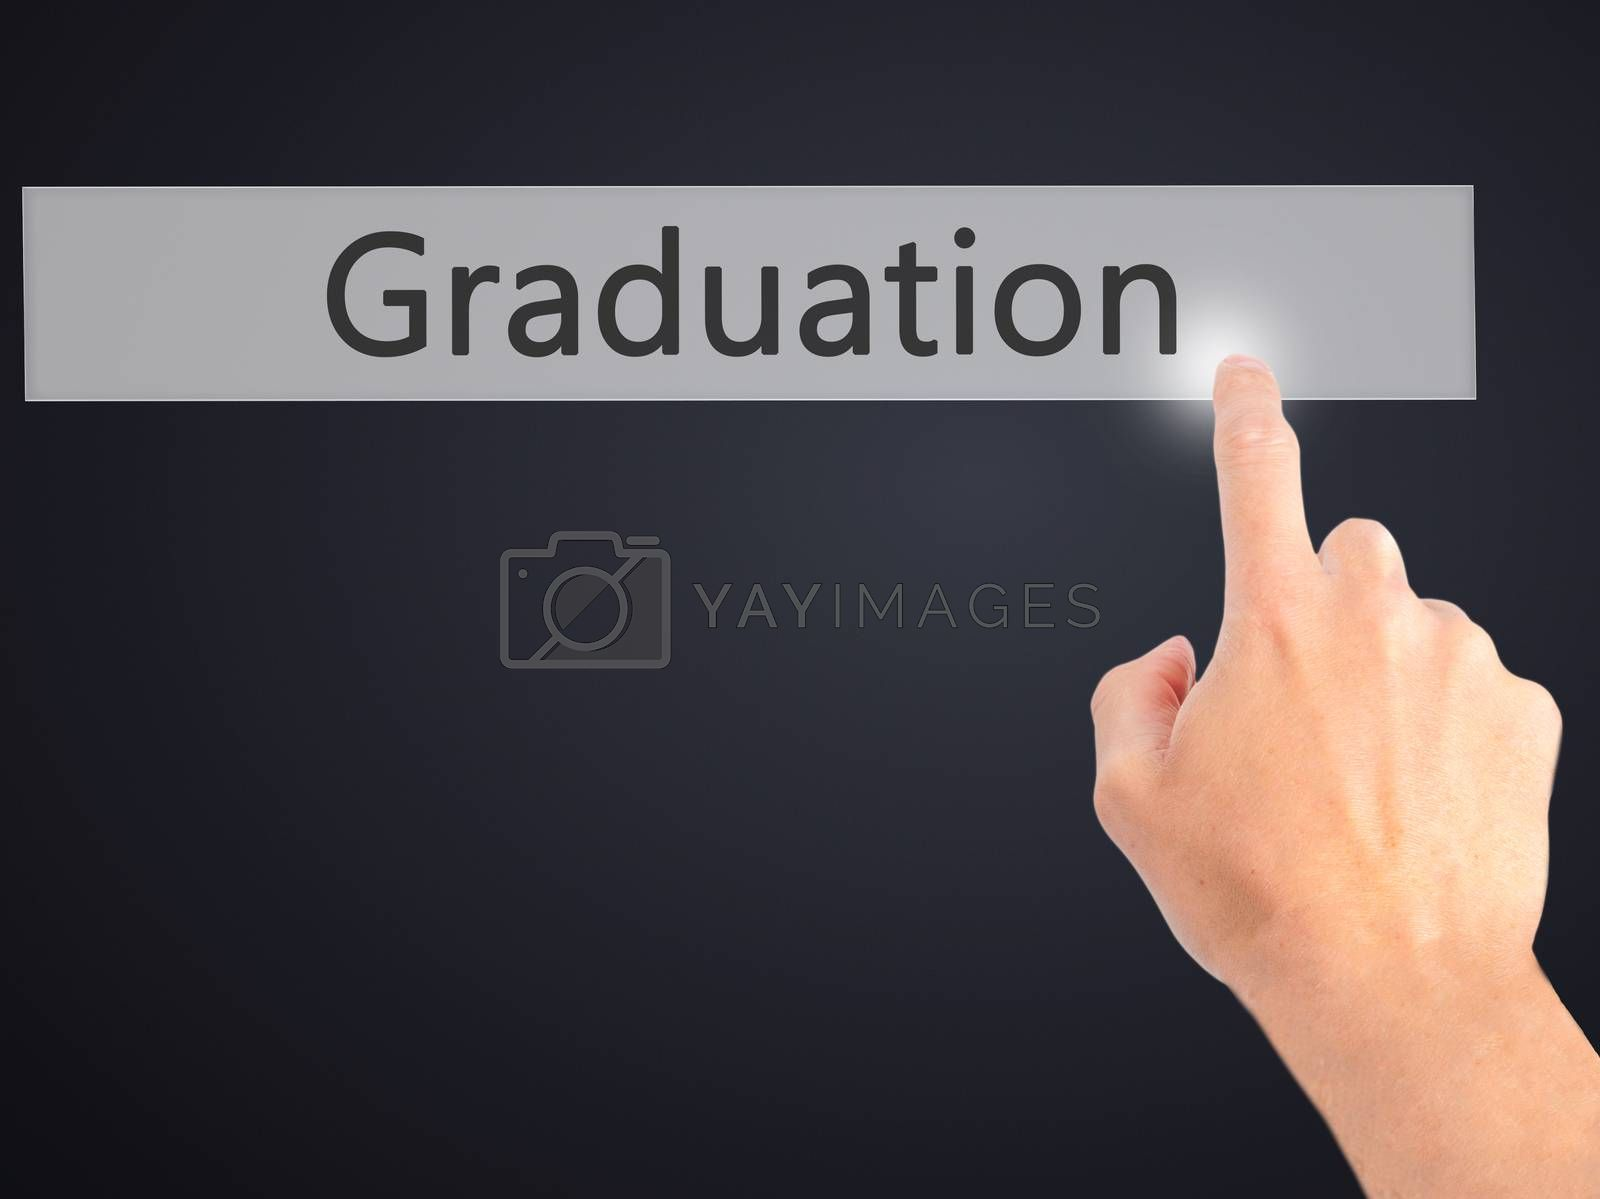 Graduation - Hand pressing a button on blurred background concep by netsay.net